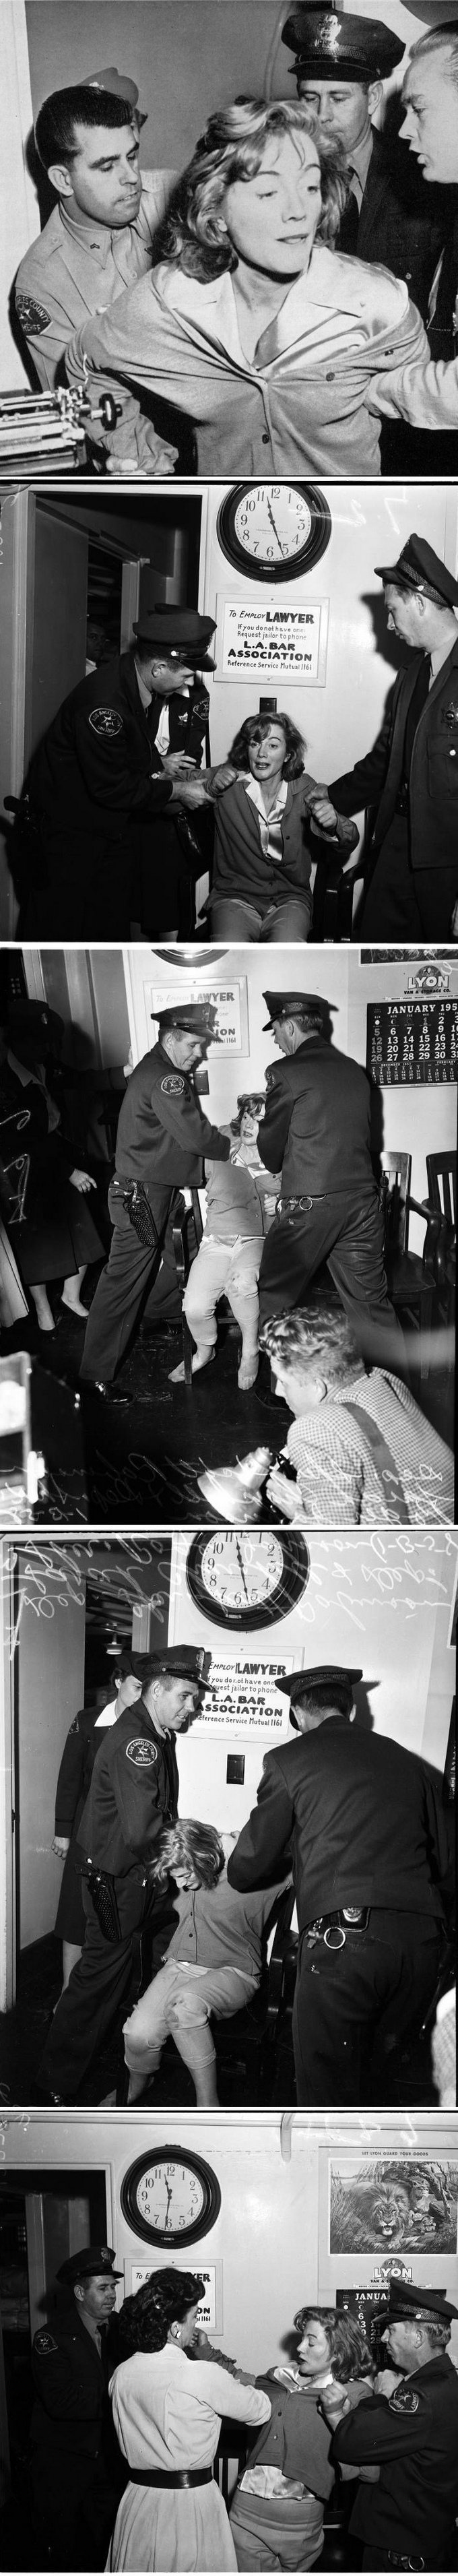 1958_actress_sarah_churchill_the_second_daughter_of_winston_churchill_is_arrested_for_being_drunk_malibu_california.jpg